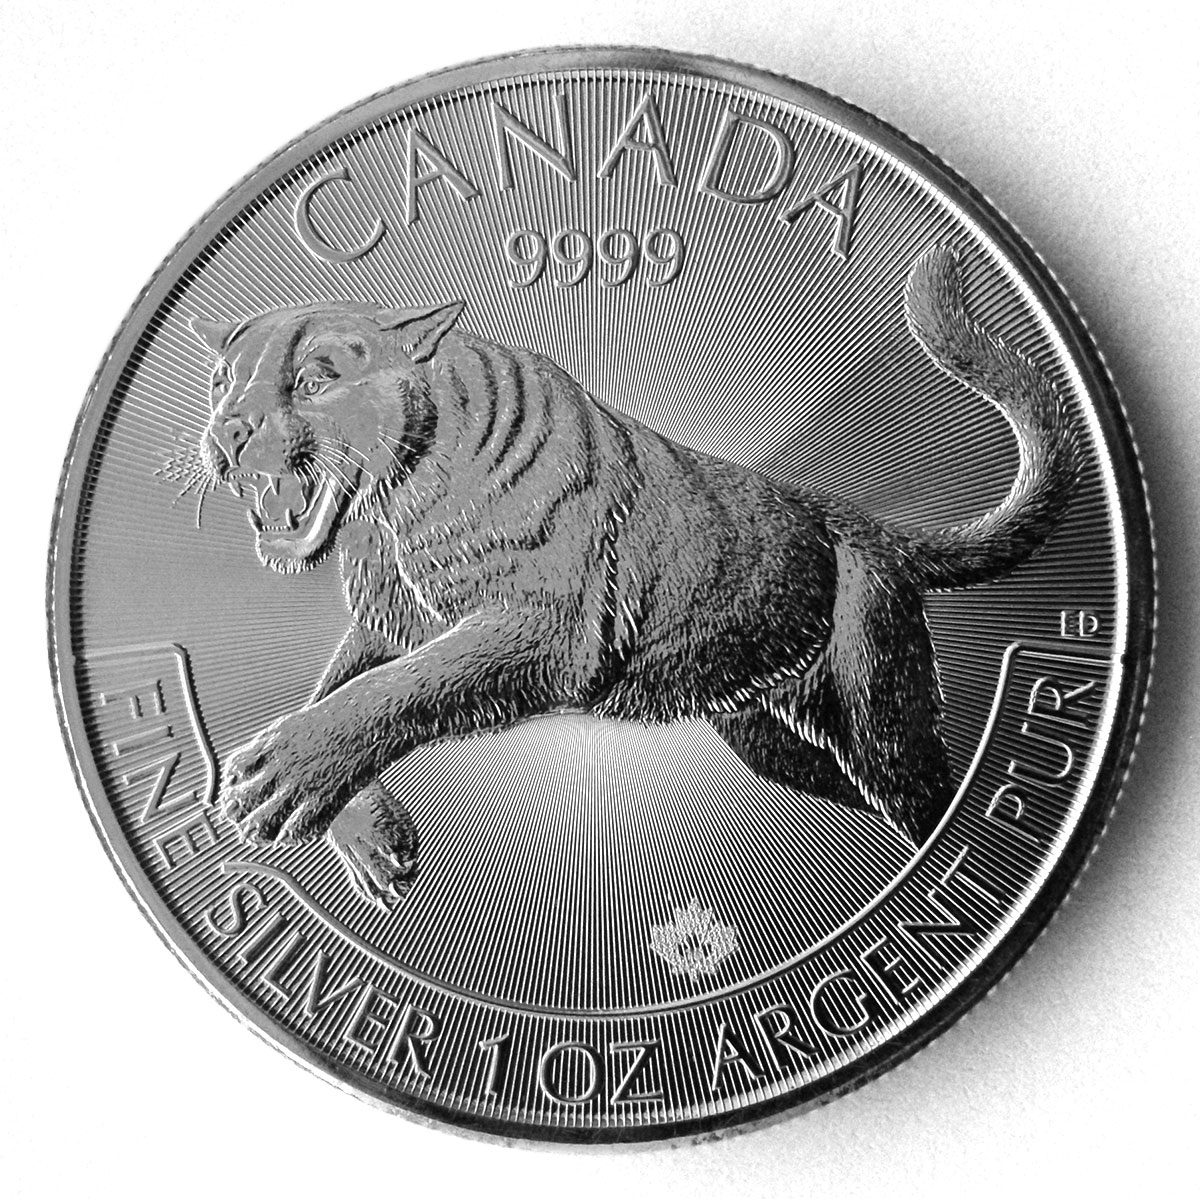 Bullion coin designed by Emily S. Damstra